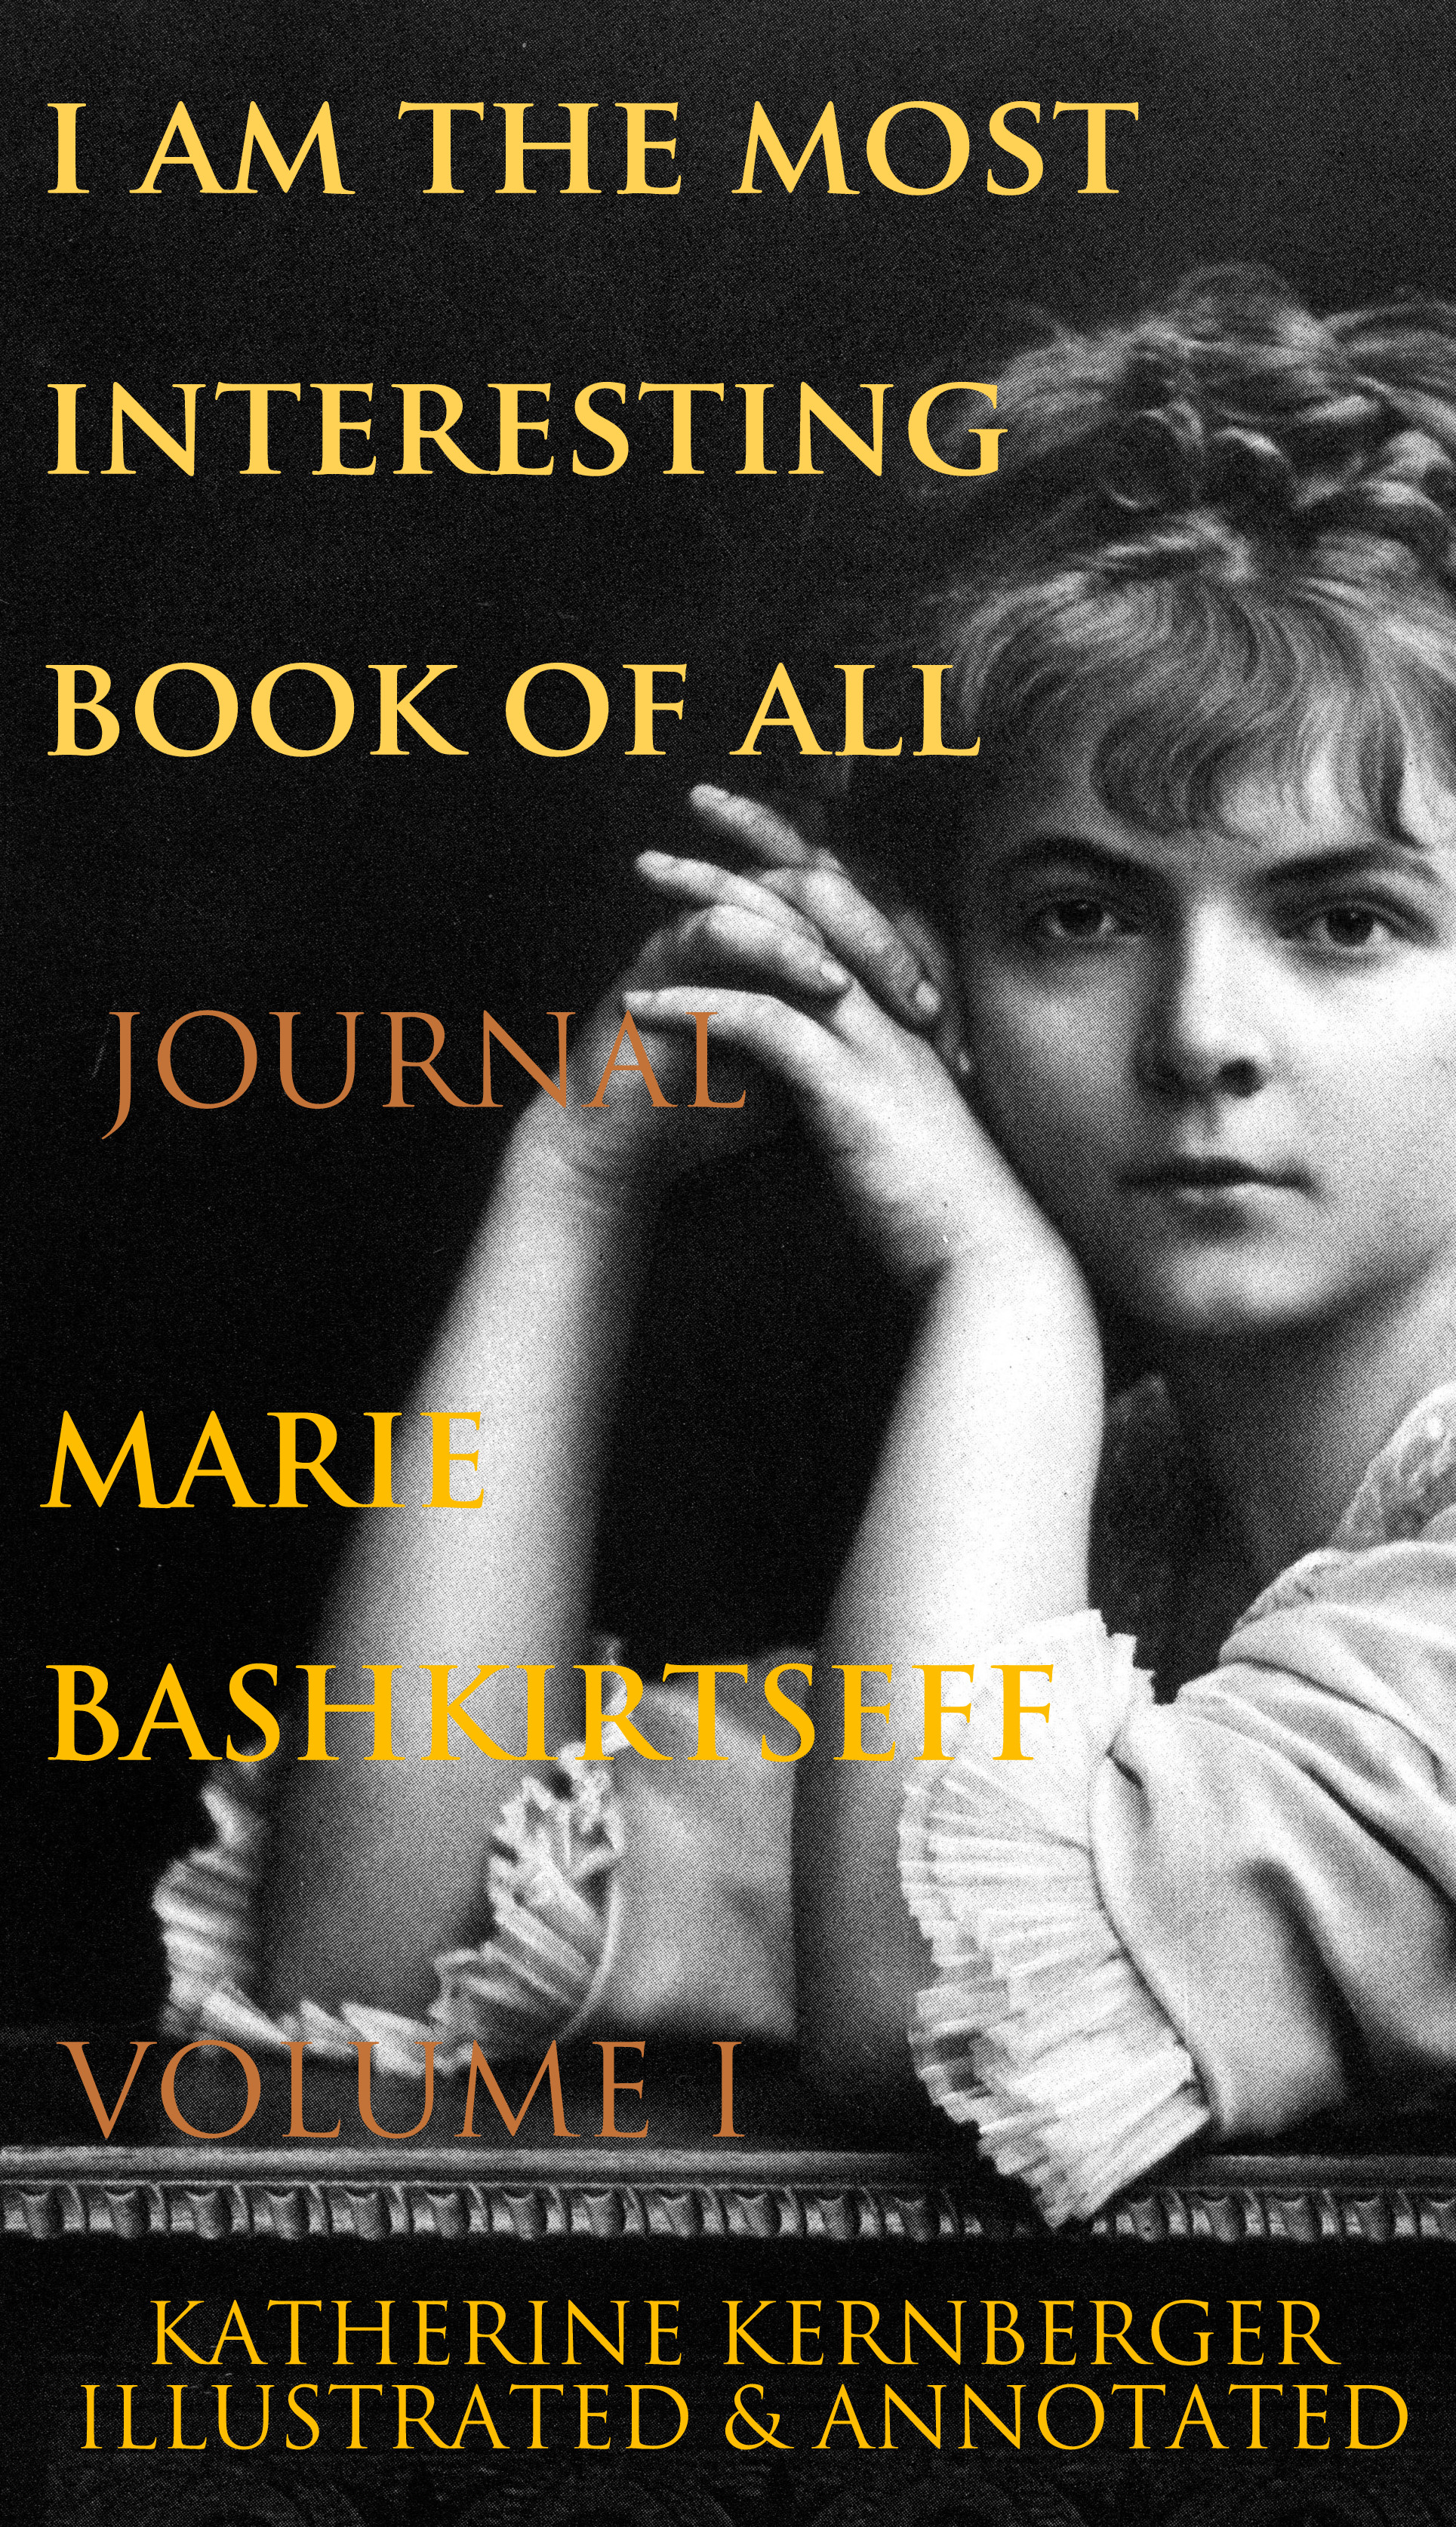 Marie Bashkirtseff, Vincent Nicolosi  Katherine Kernberger - I Am the Most Interesting Book of All, Volume I: The Journal of Marie Bashkirtseff